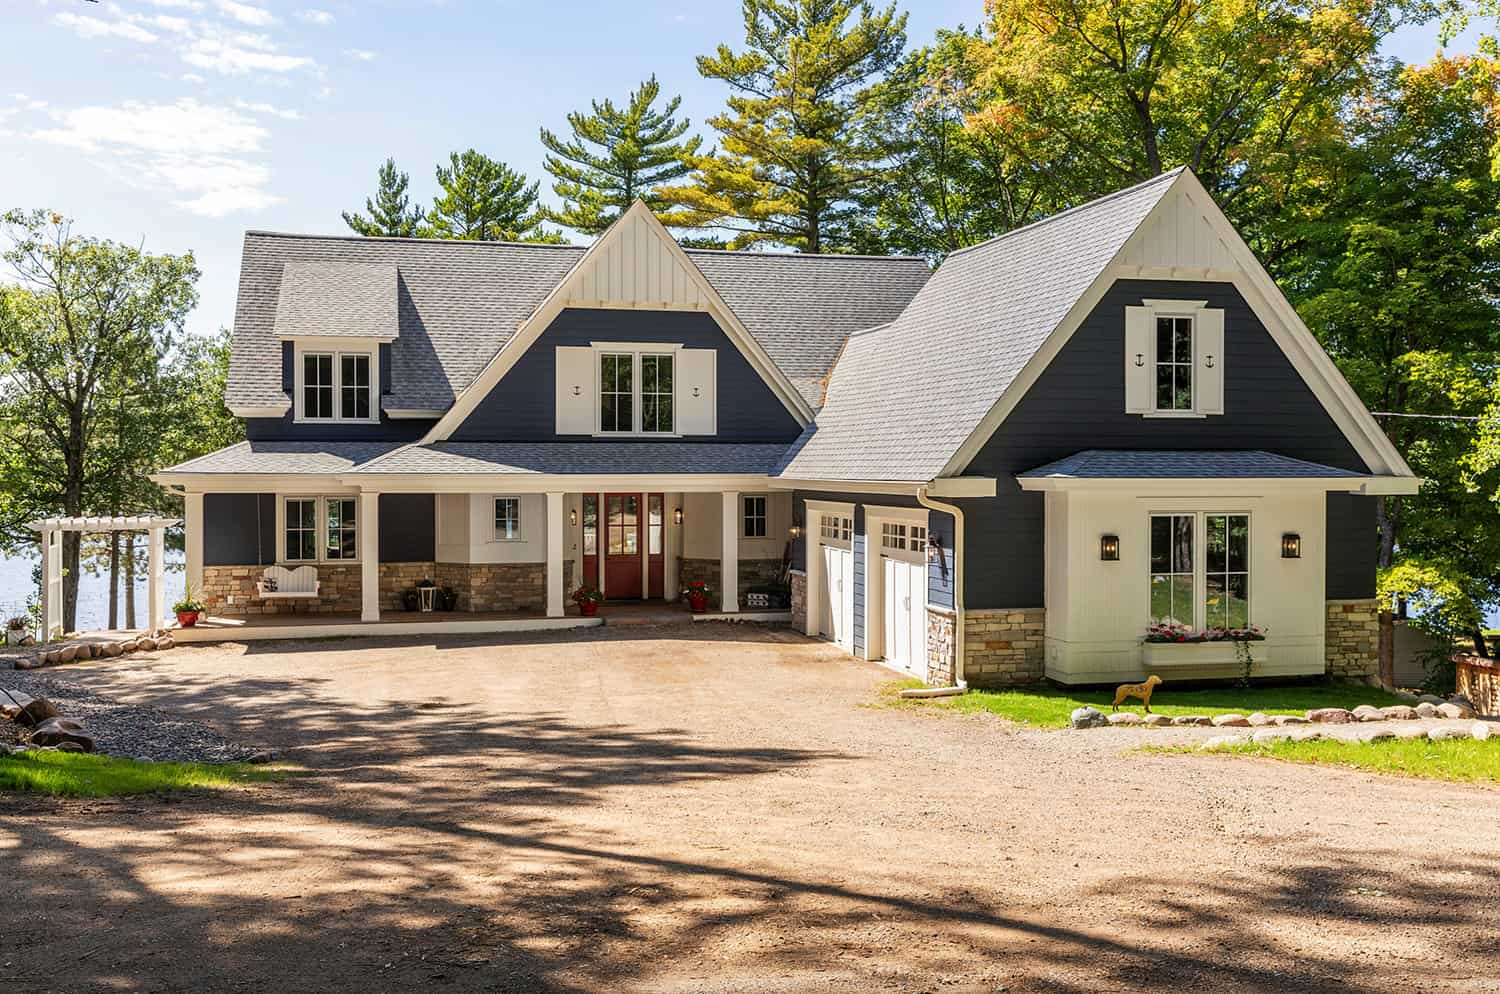 Tour a charming Northern Minnesota lake house made for empty nesters